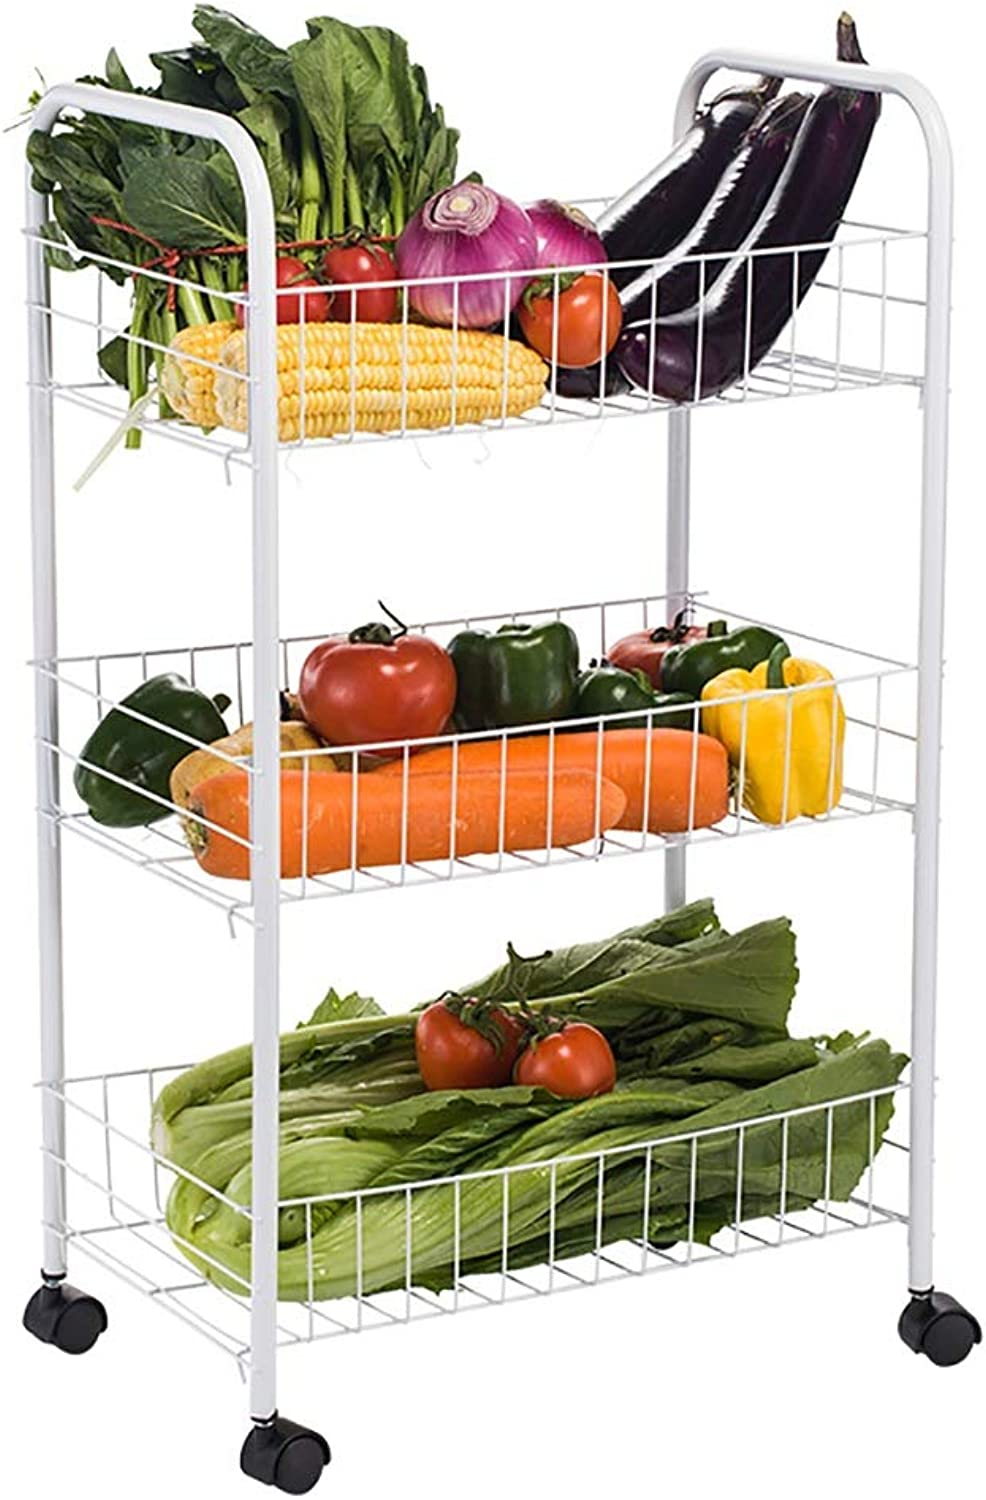 3 Tier Kitchen Storage Trolley with Wheels Carbon Steel Fruit Vegetable Rack for Bathroom Multifunction Organizing White